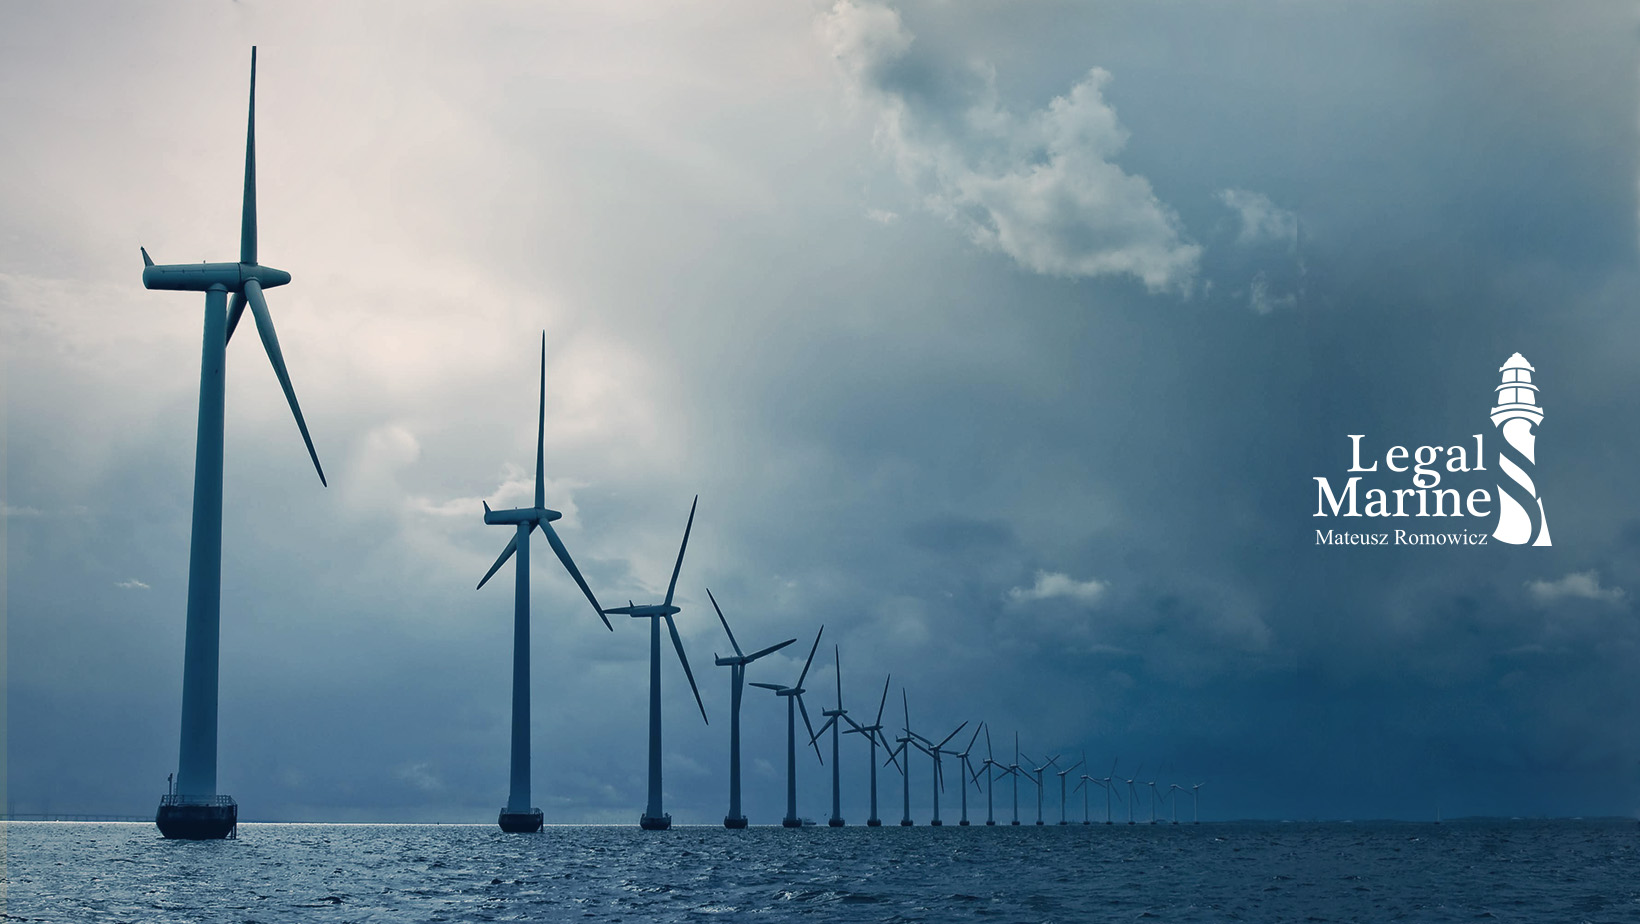 Offshore Wind Power in Poland is Illusion in the Coming Years – Interview with Mateusz Romowicz, Legal Adviser